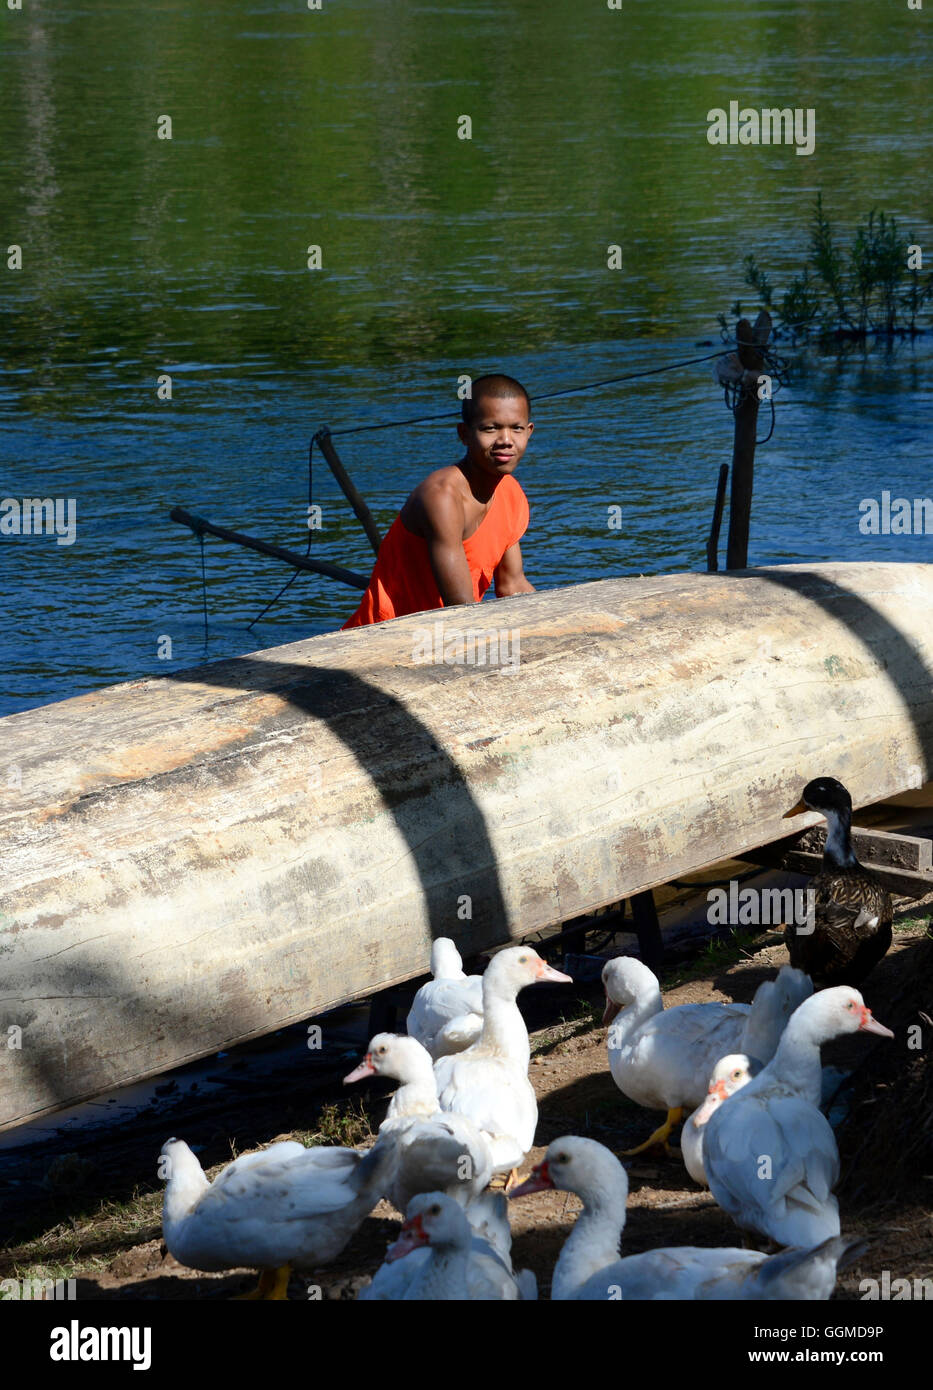 Local attending to his boat, Si Phan Don, Island of Don Khon, 1000 island, south-Laos, Laos, Asia - Stock Image